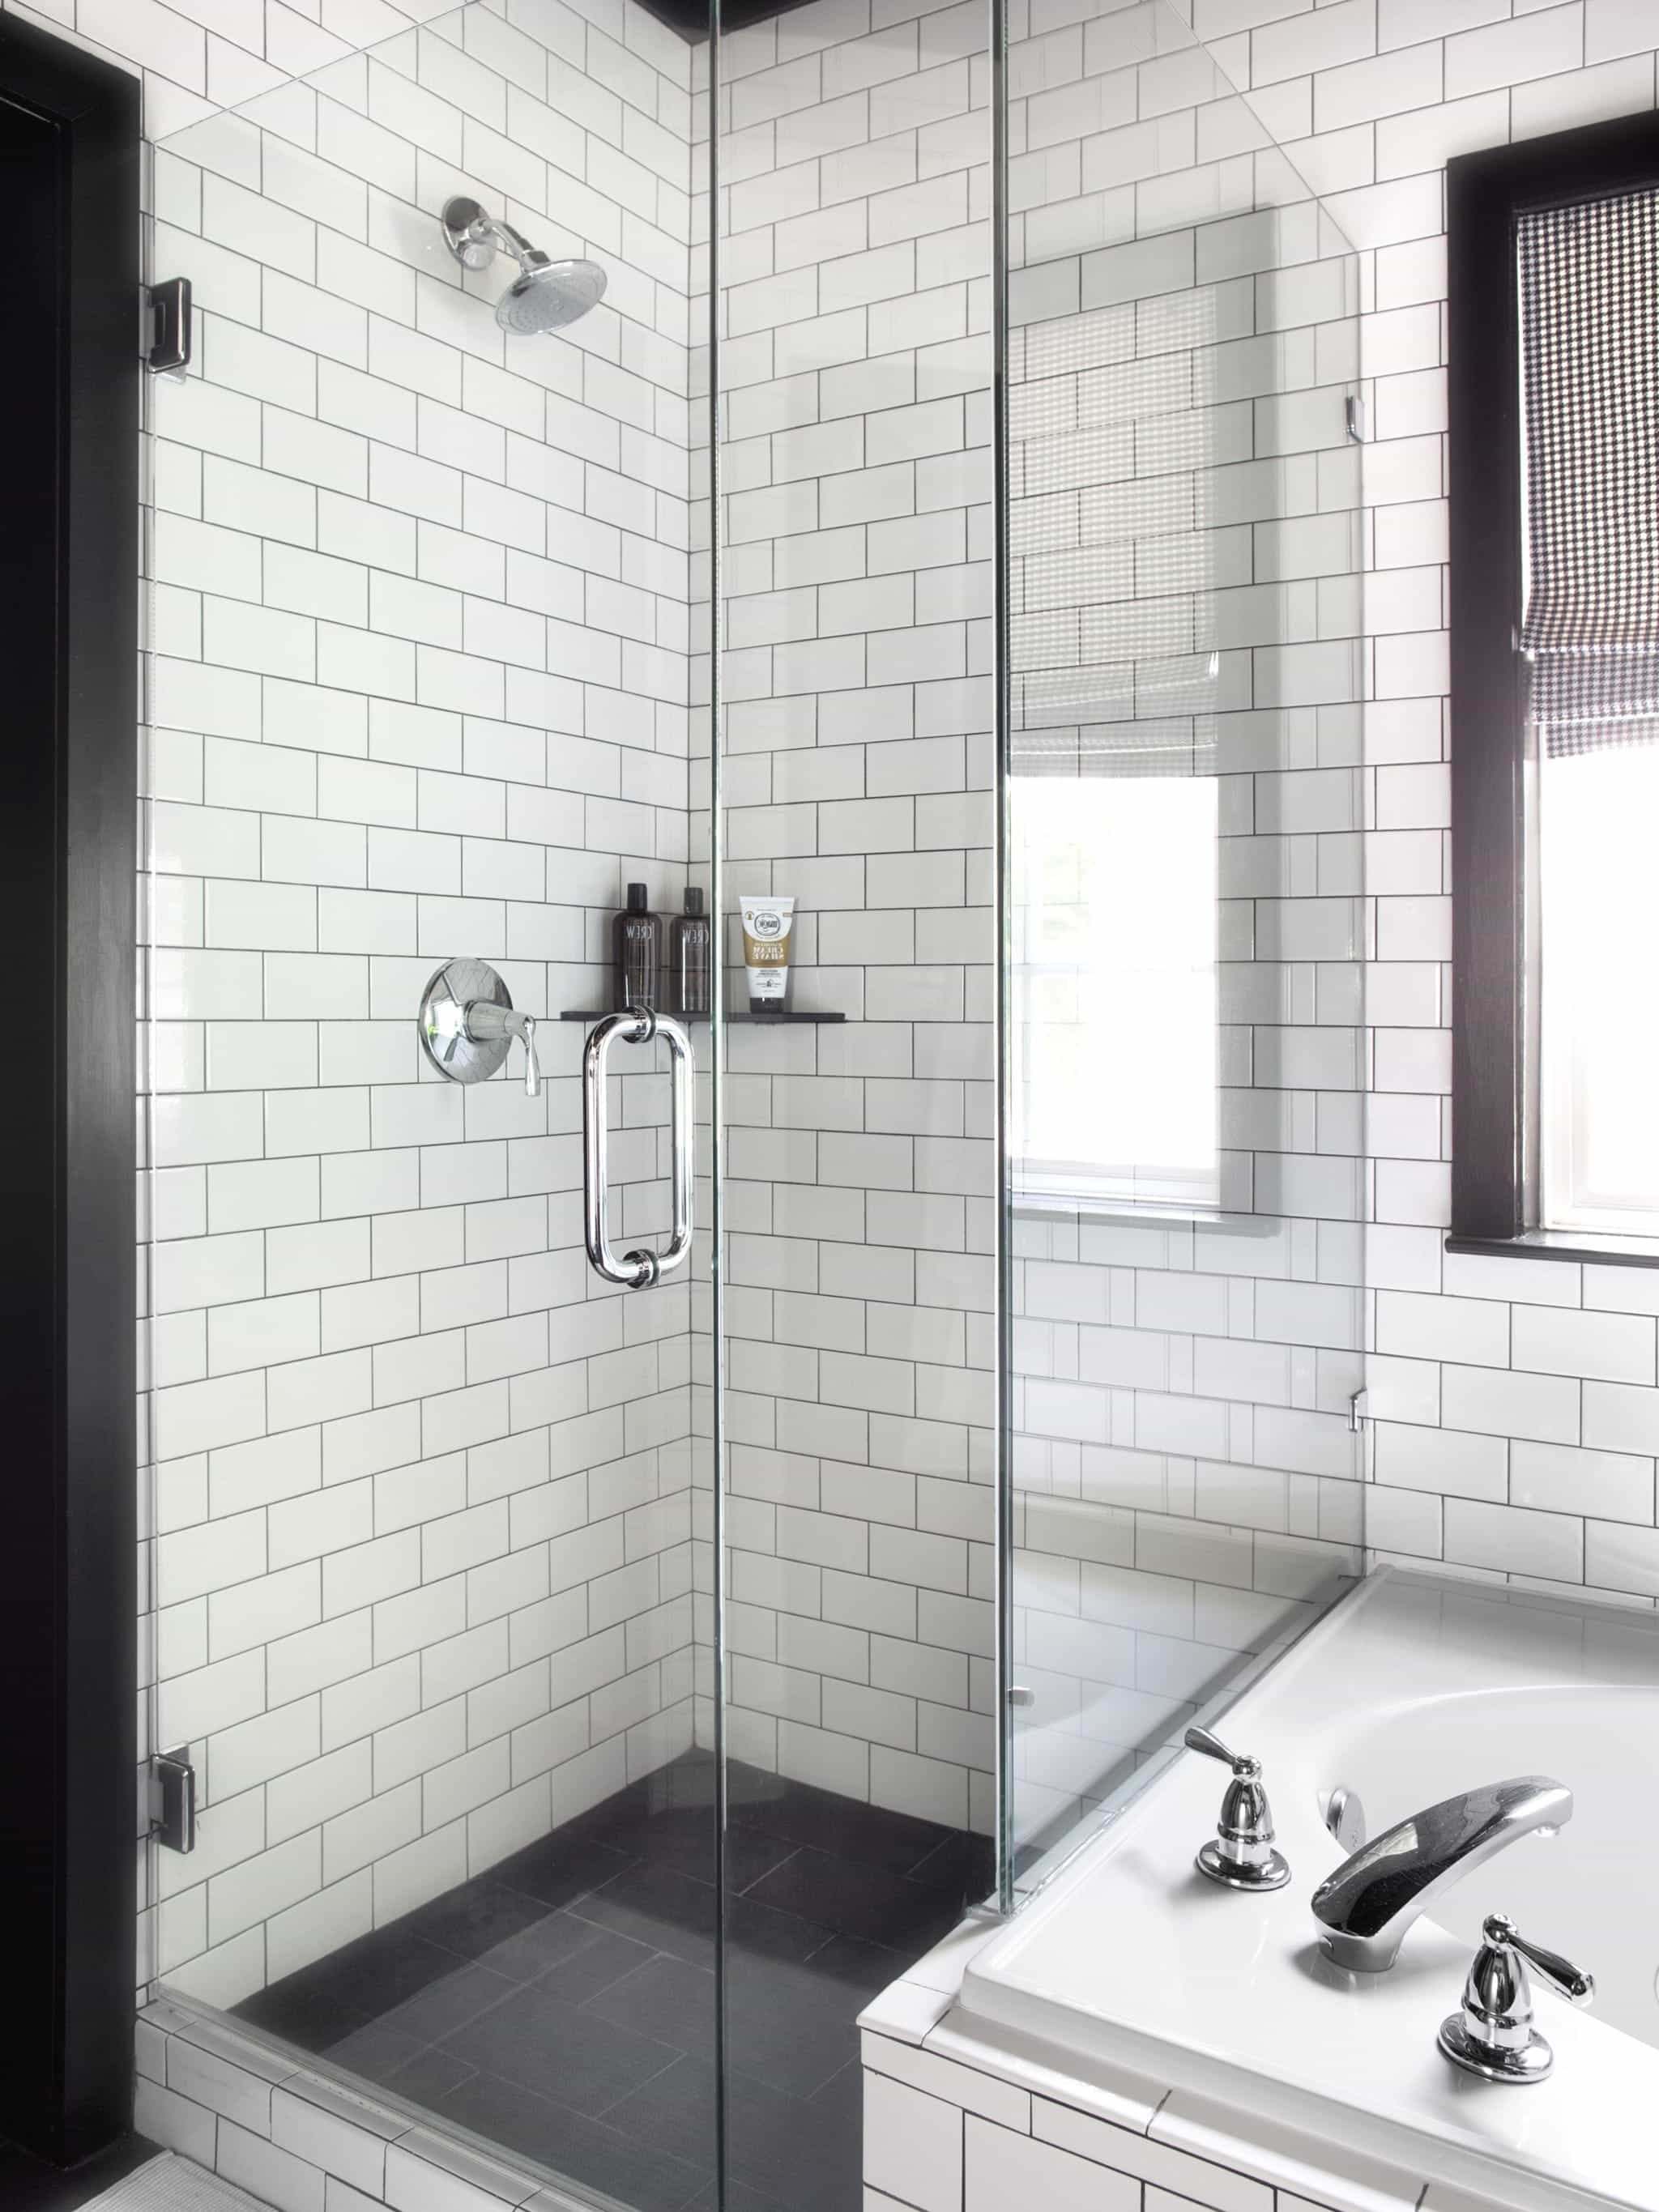 Black And White Contemporary Bathroom With Brick Pattern Tile (View 15 of 20)